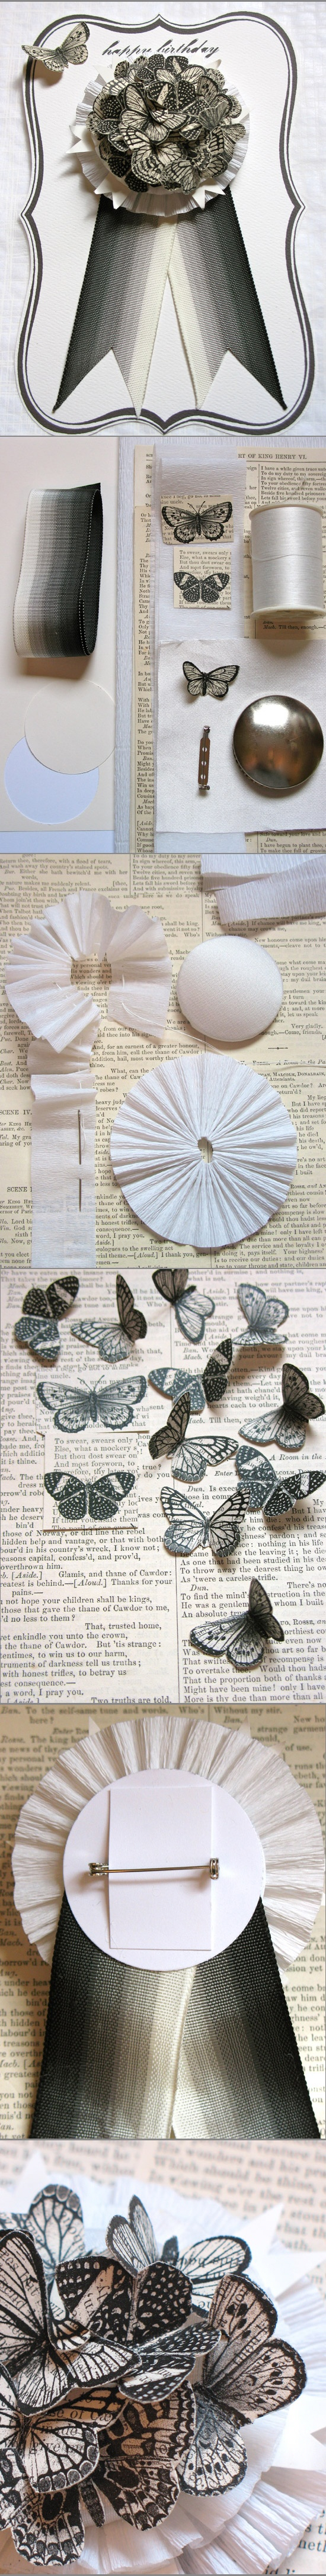 168 best Paper Crafts images on Pinterest